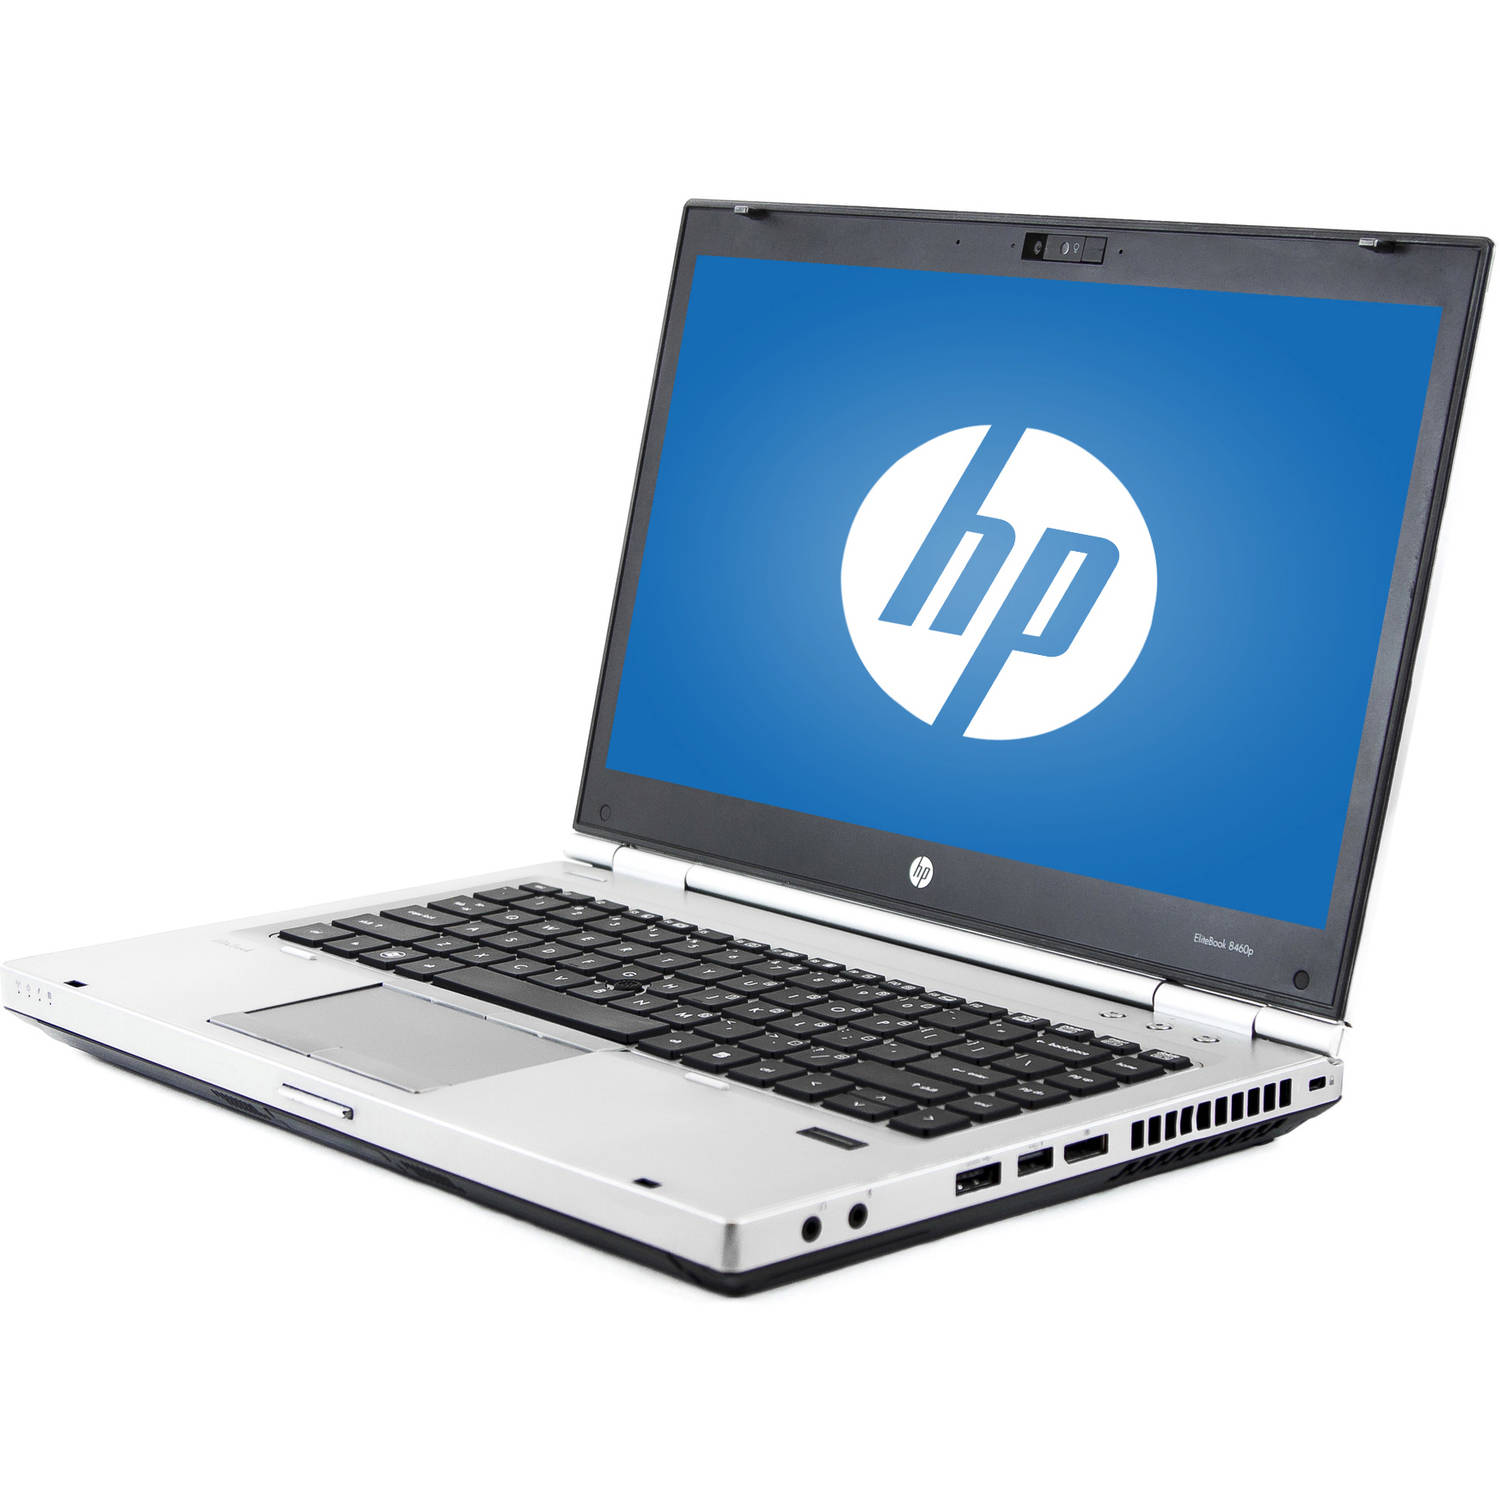 "Refurbished HP Silver 14"" EliteBook 8460P Laptop PC with Intel Core i5 Processor, 4GB Memory, 500GB Hard Drive and Windows 7 Professional"